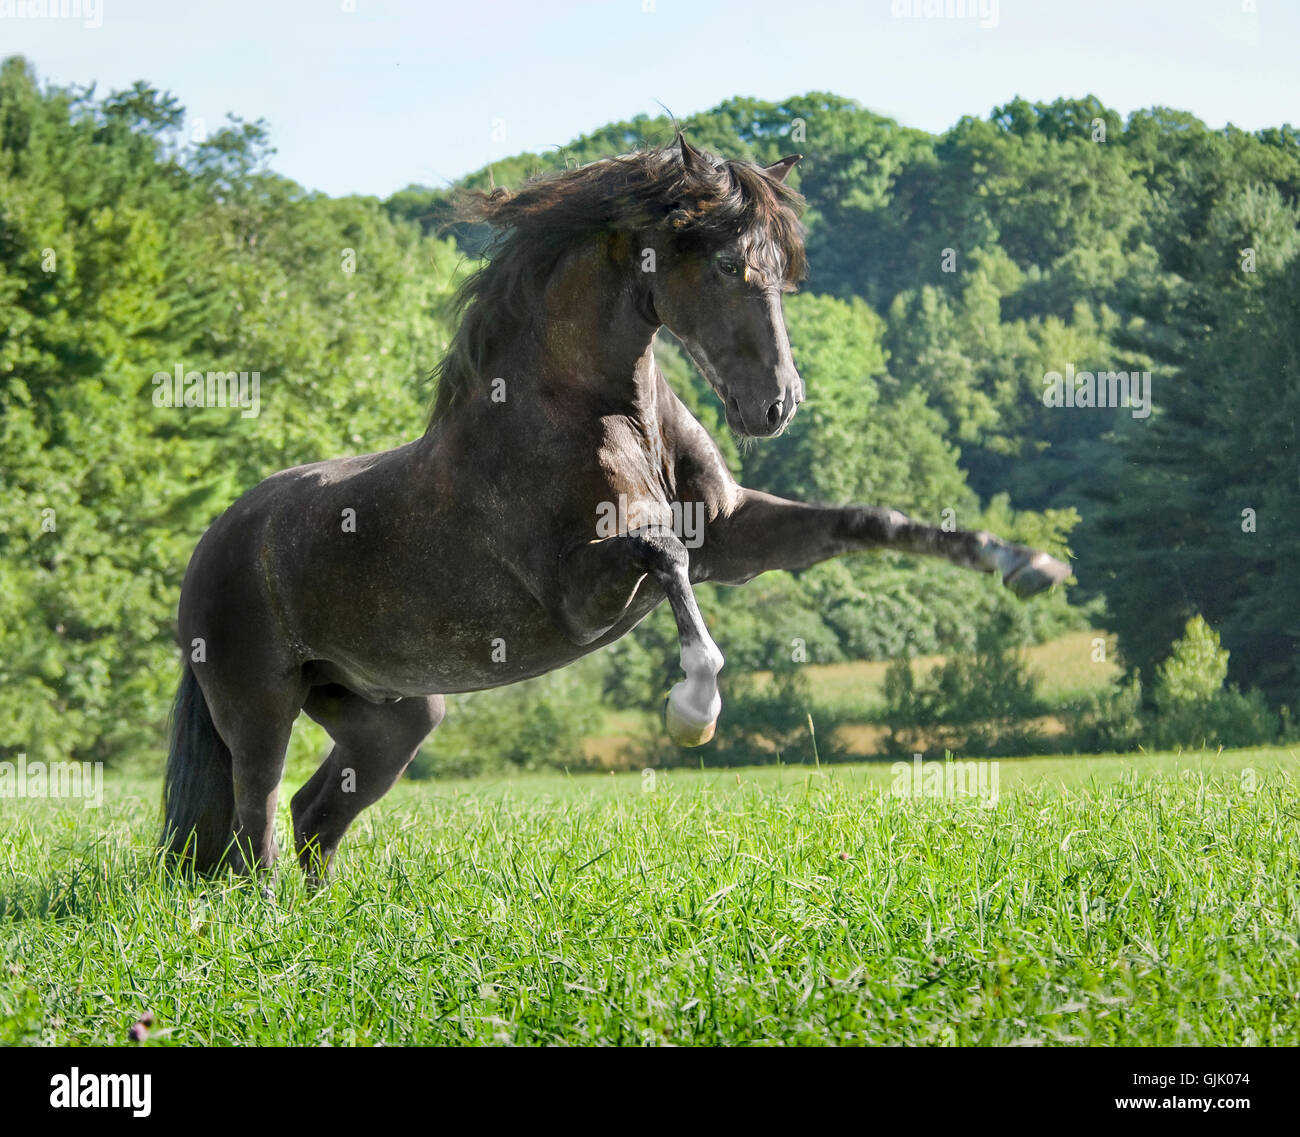 Black Andalusian horse stallion rearing up in tall grass pasture - Stock Image